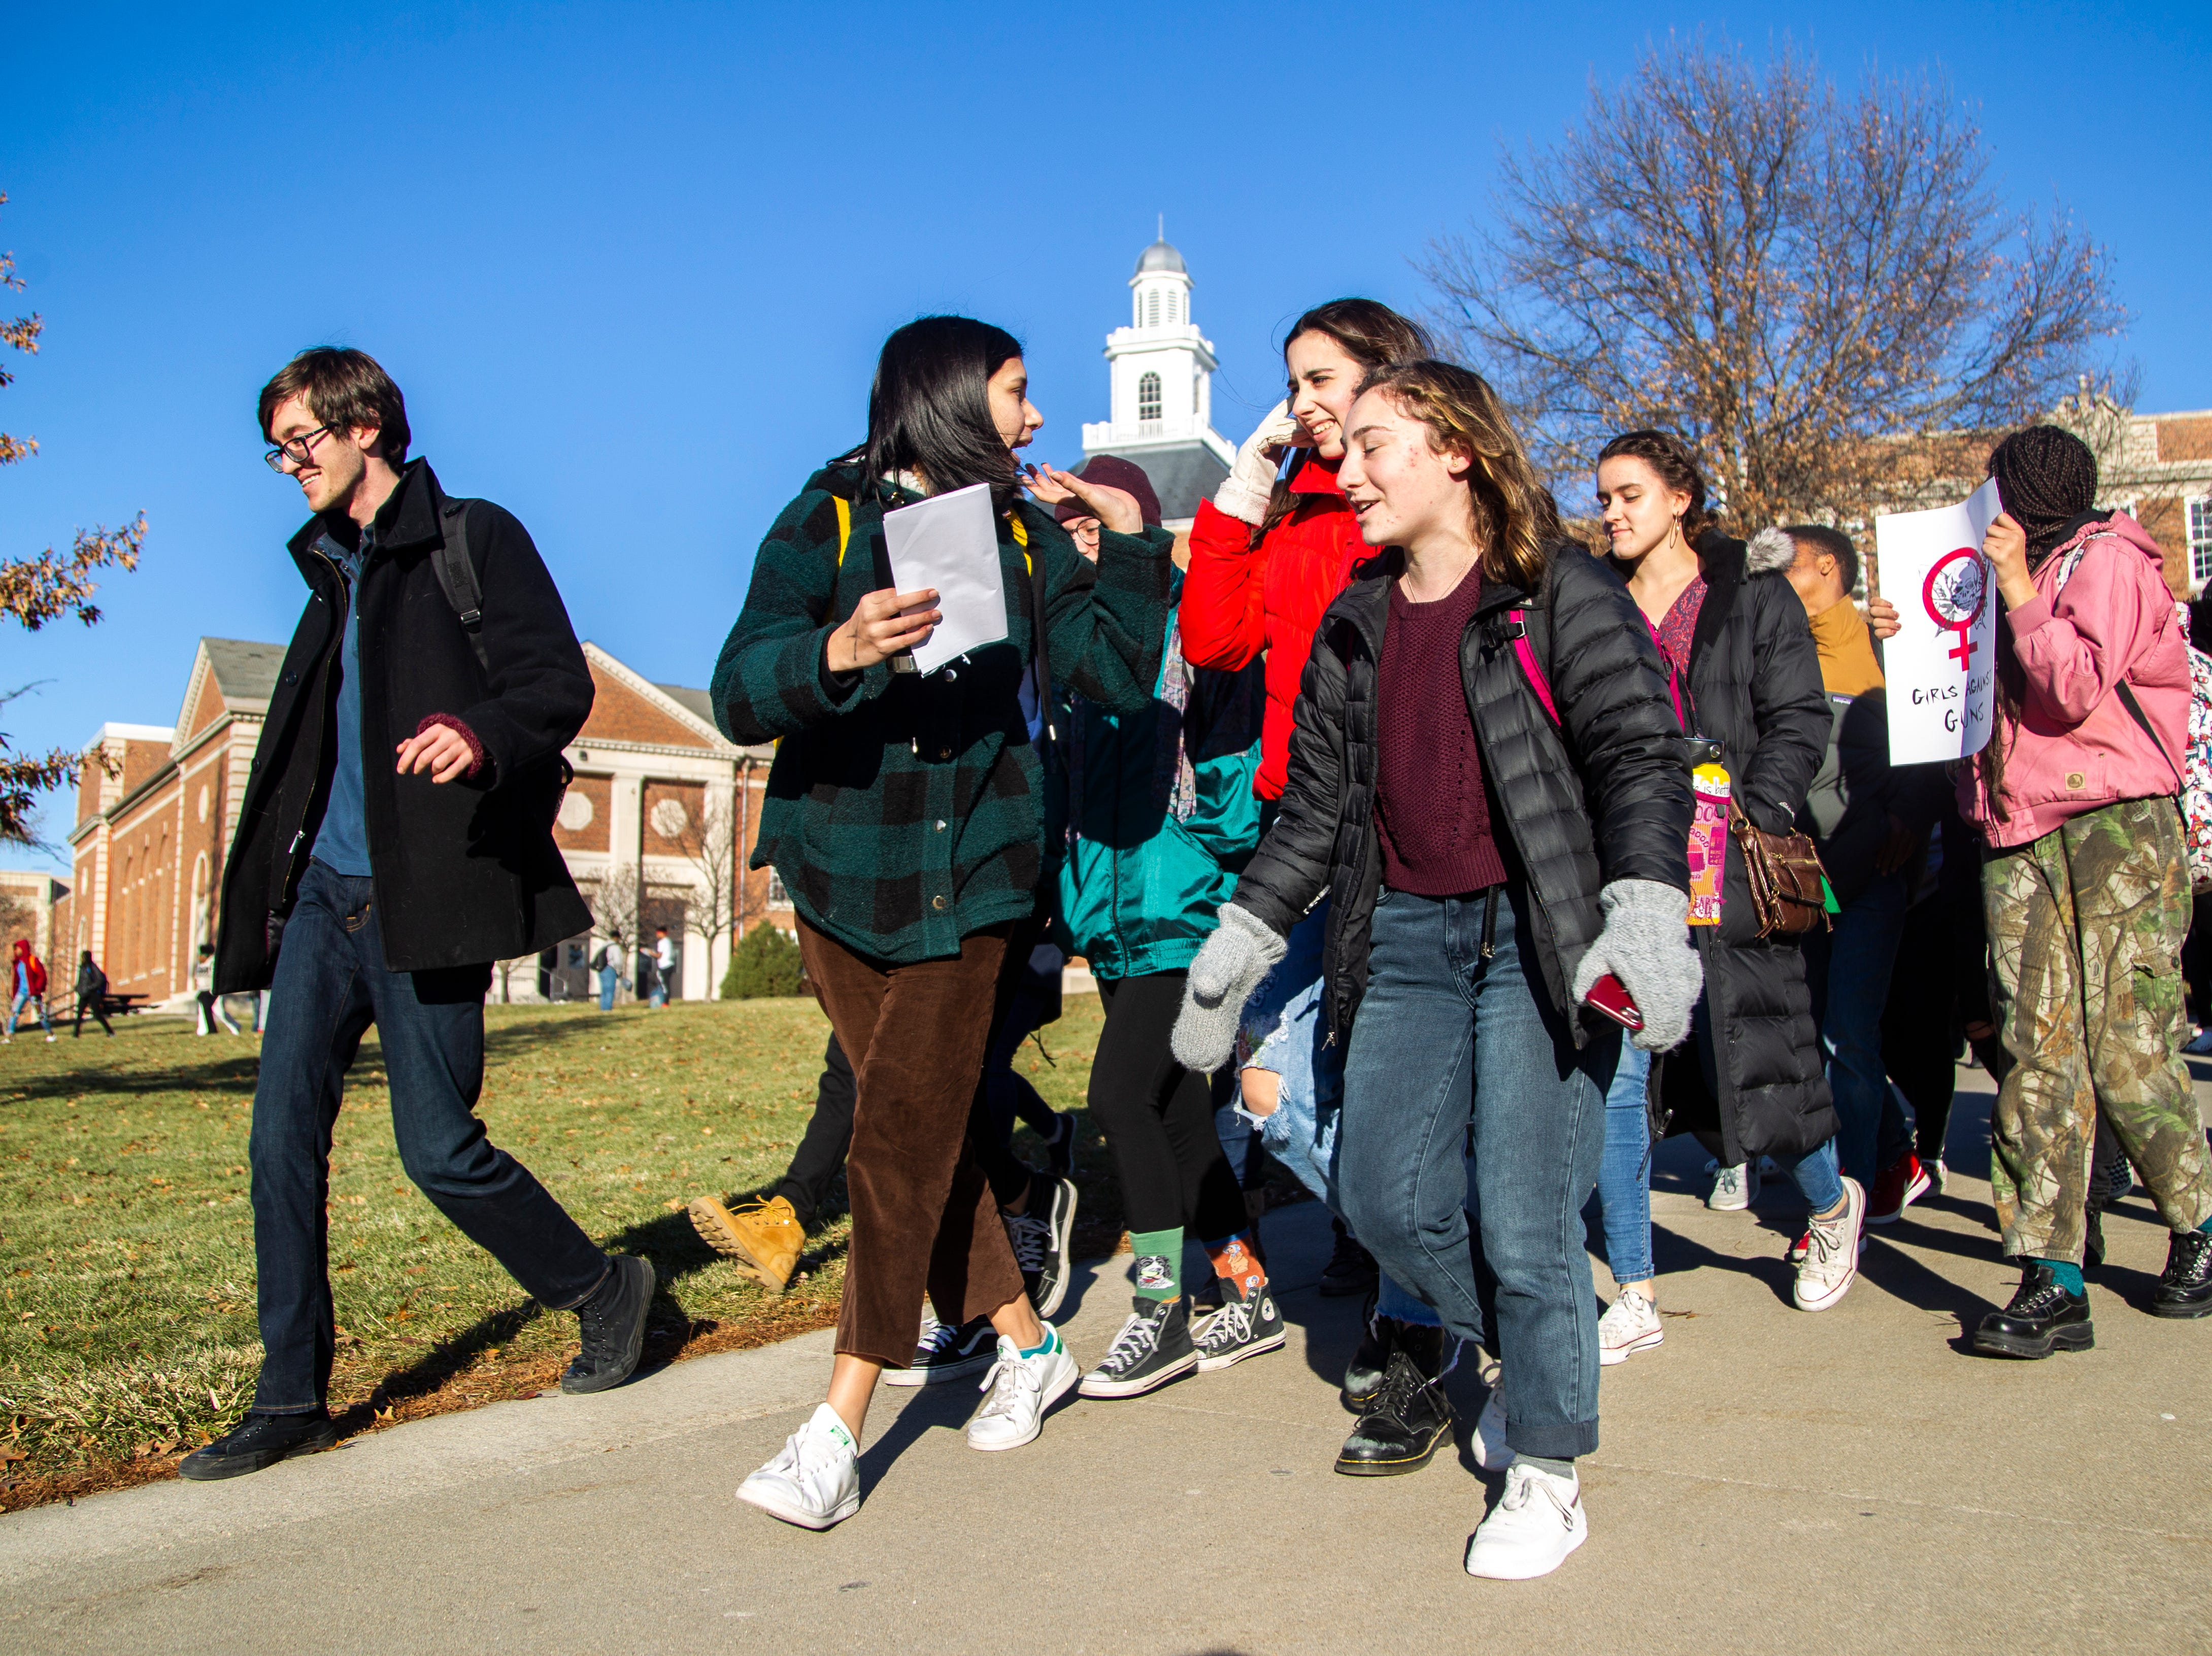 City High sophomore Shoshie Hemley (center) leads City High students while they march towards downtown during a walkout on Friday, Dec. 14, 2018, in Iowa City. The Students Against School Shootings group organized the walkout to land on the 6th anniversary of the Sandy Hook school shooting.